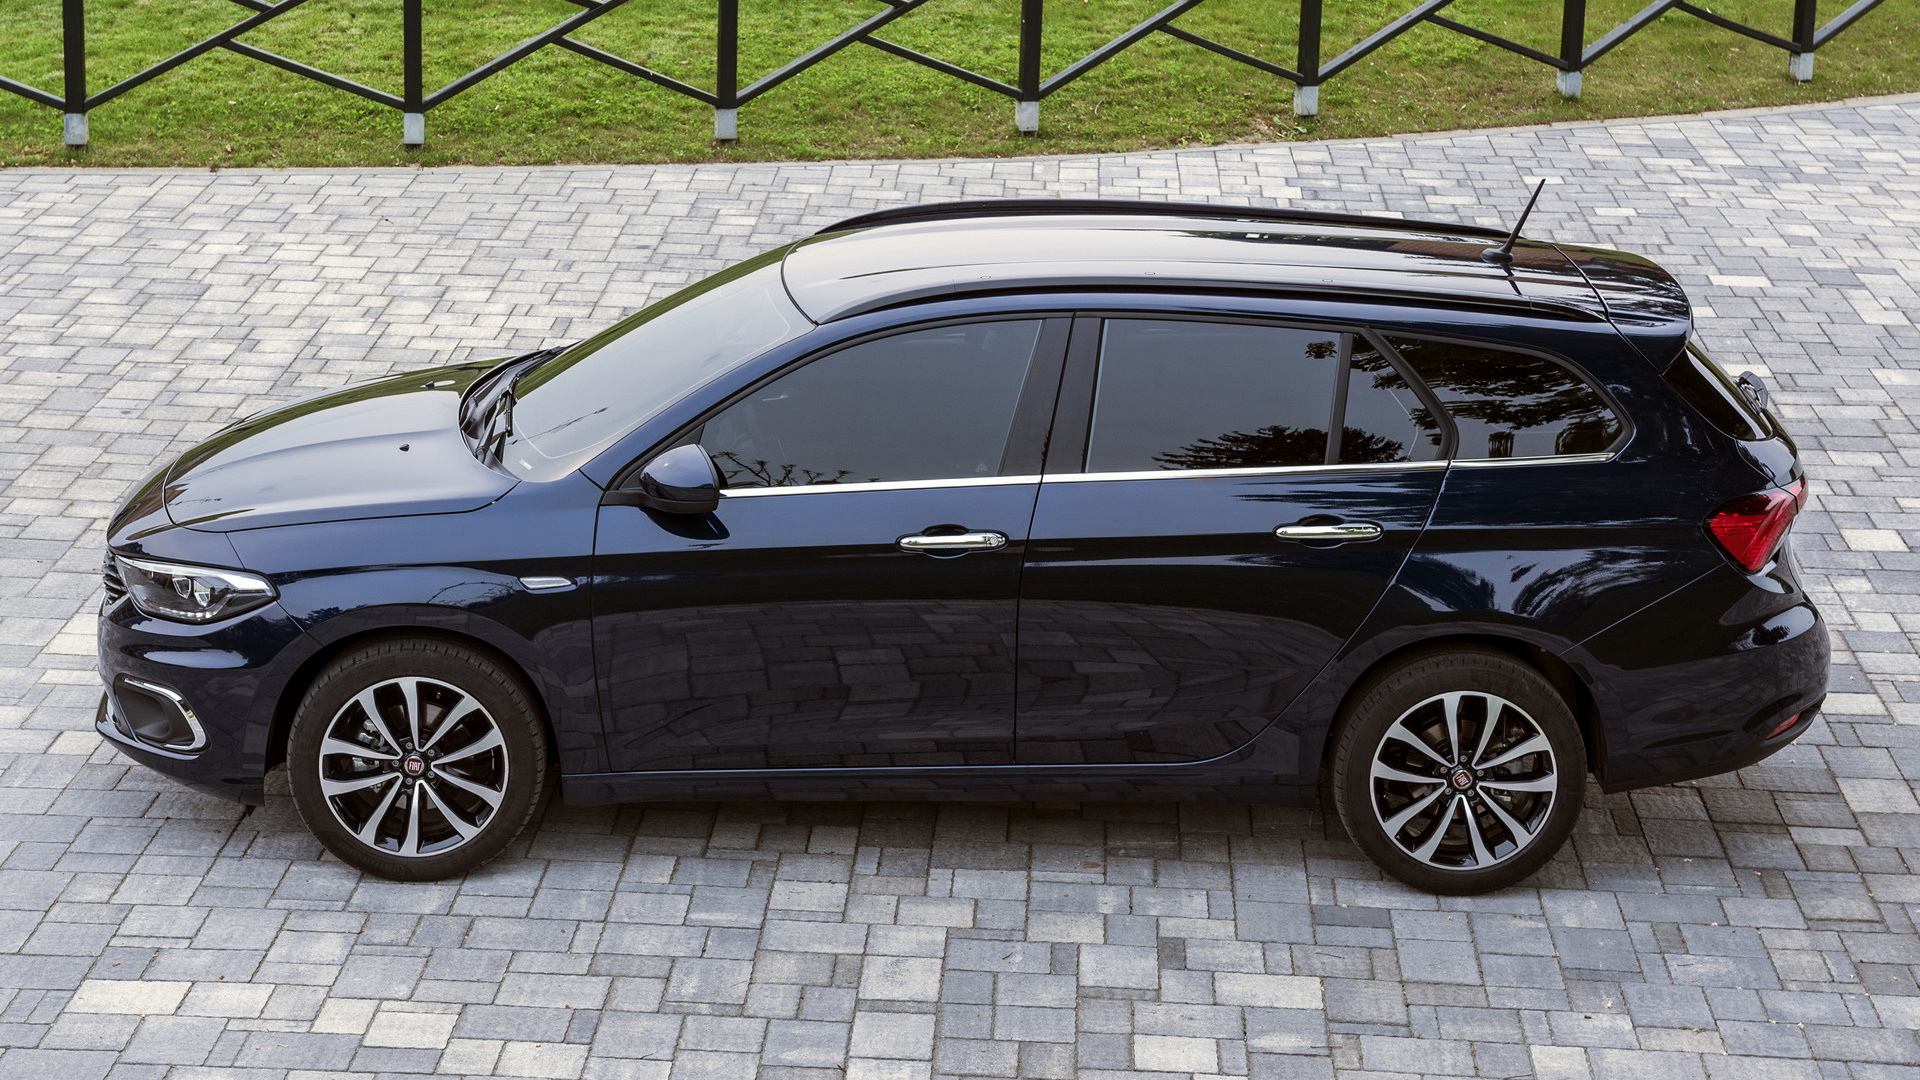 fiat tipo station wagon 2016 wallpapers and hd images car pixel. Black Bedroom Furniture Sets. Home Design Ideas